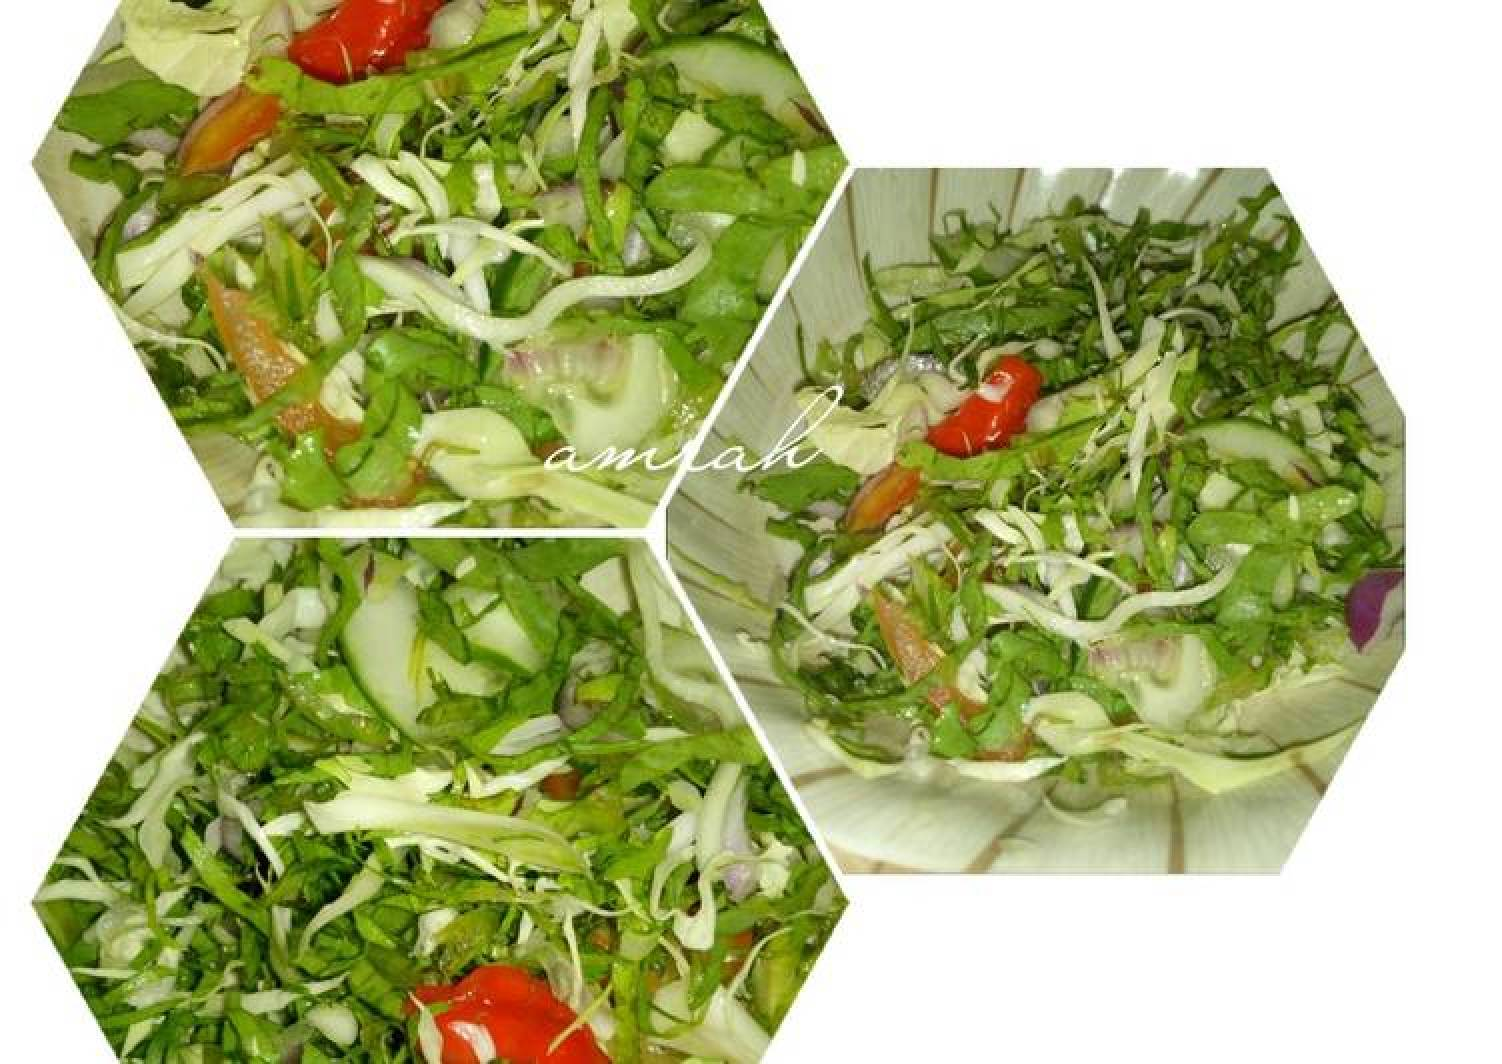 Cabbage and lettuce salad